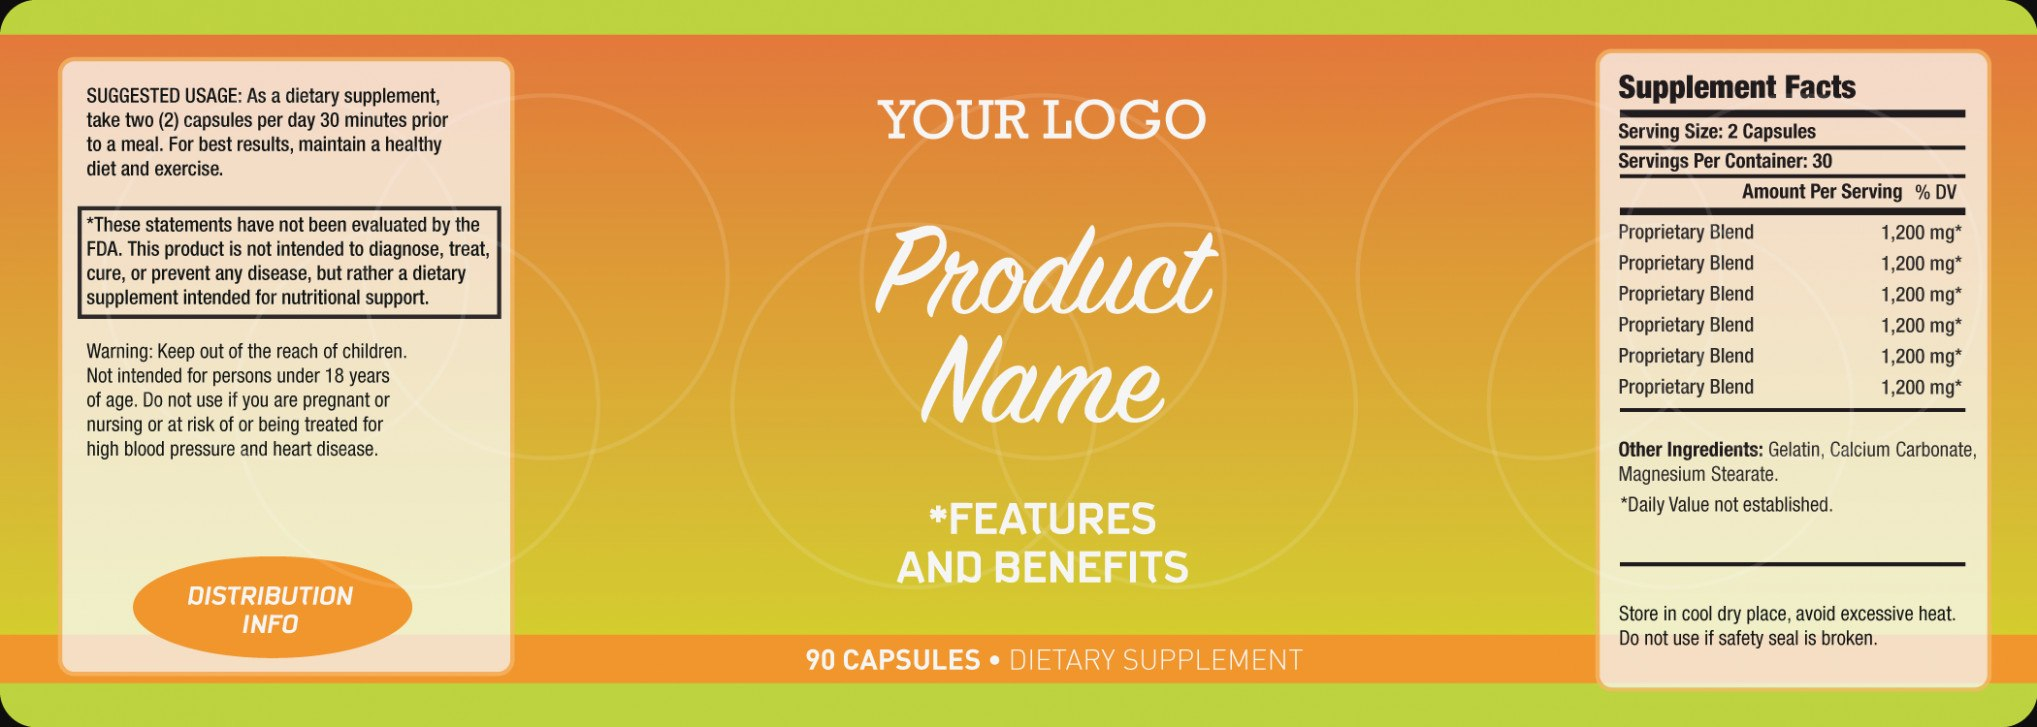 Labeling Product Label Templates  Google Docs Templates – Ffxiv Inside Product Label Design Templates Free